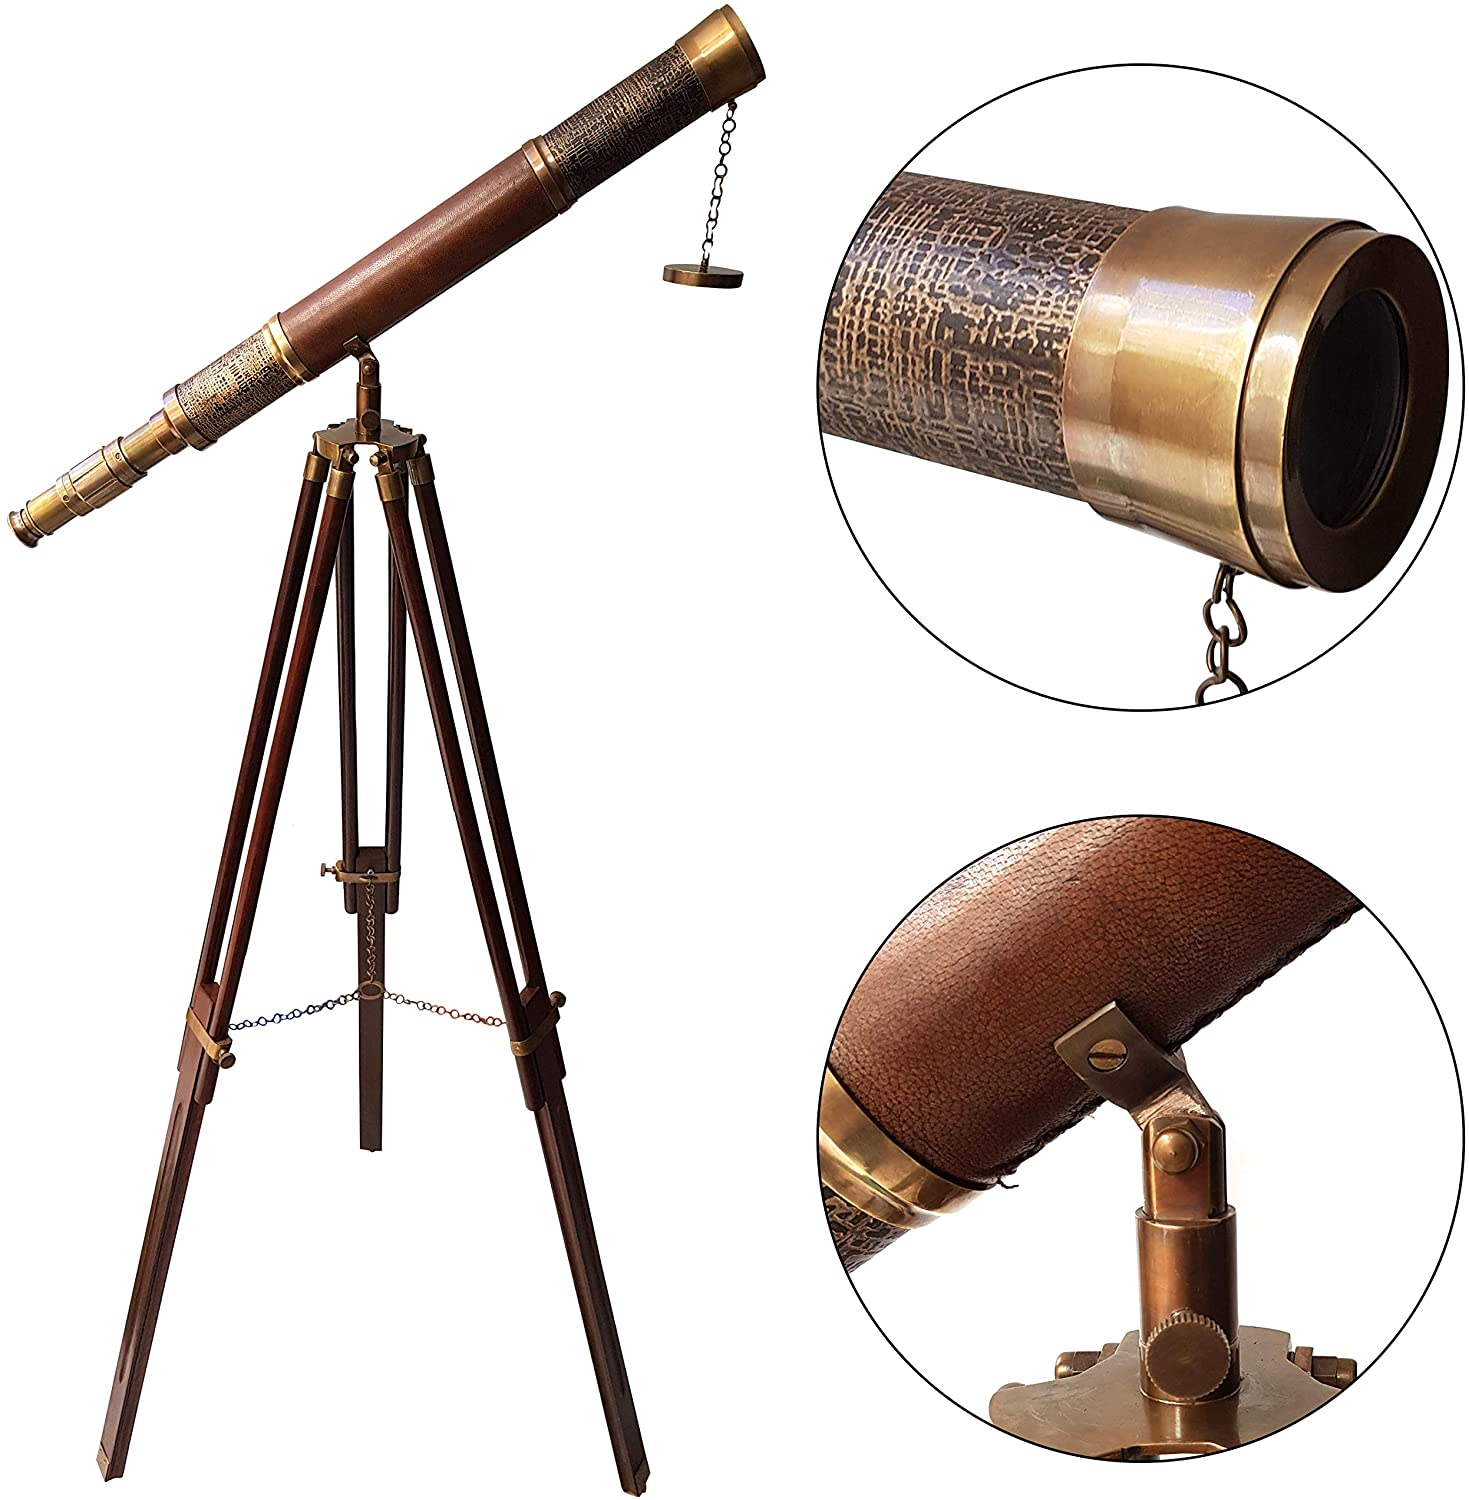 Nautical Floor Standind Solid Brass Antique Telescope with Brown Wooden Tripod Stand Leather Cover Scope